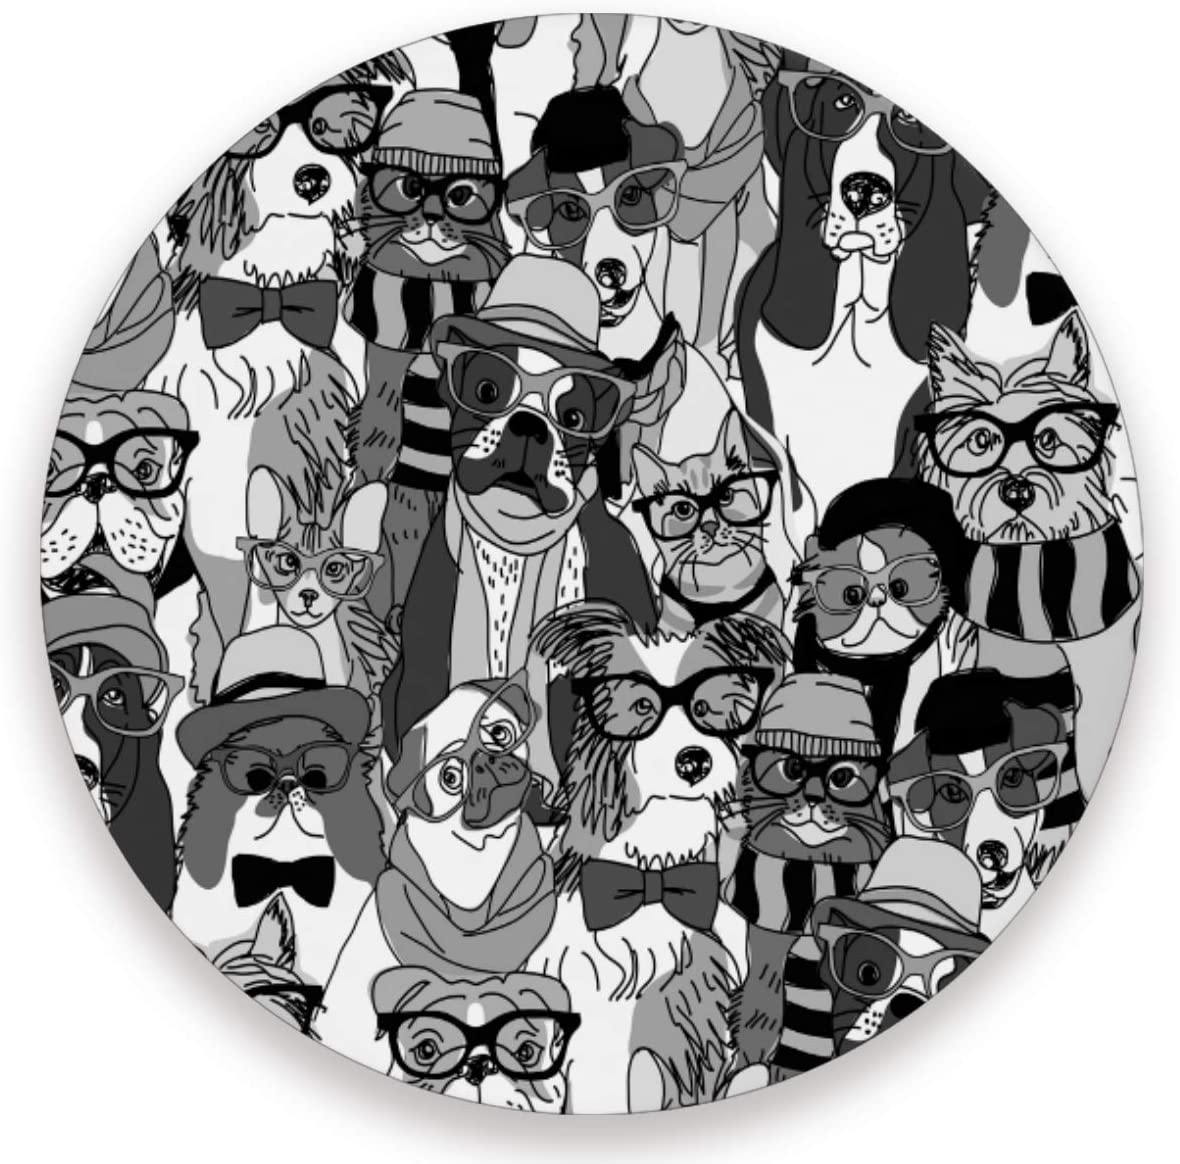 Olinyou Monochrome Animal Cats And Dogs Coasters for Drinks Set of 4 Absorbent Ceramic Stone Round Coaster with Cork Base